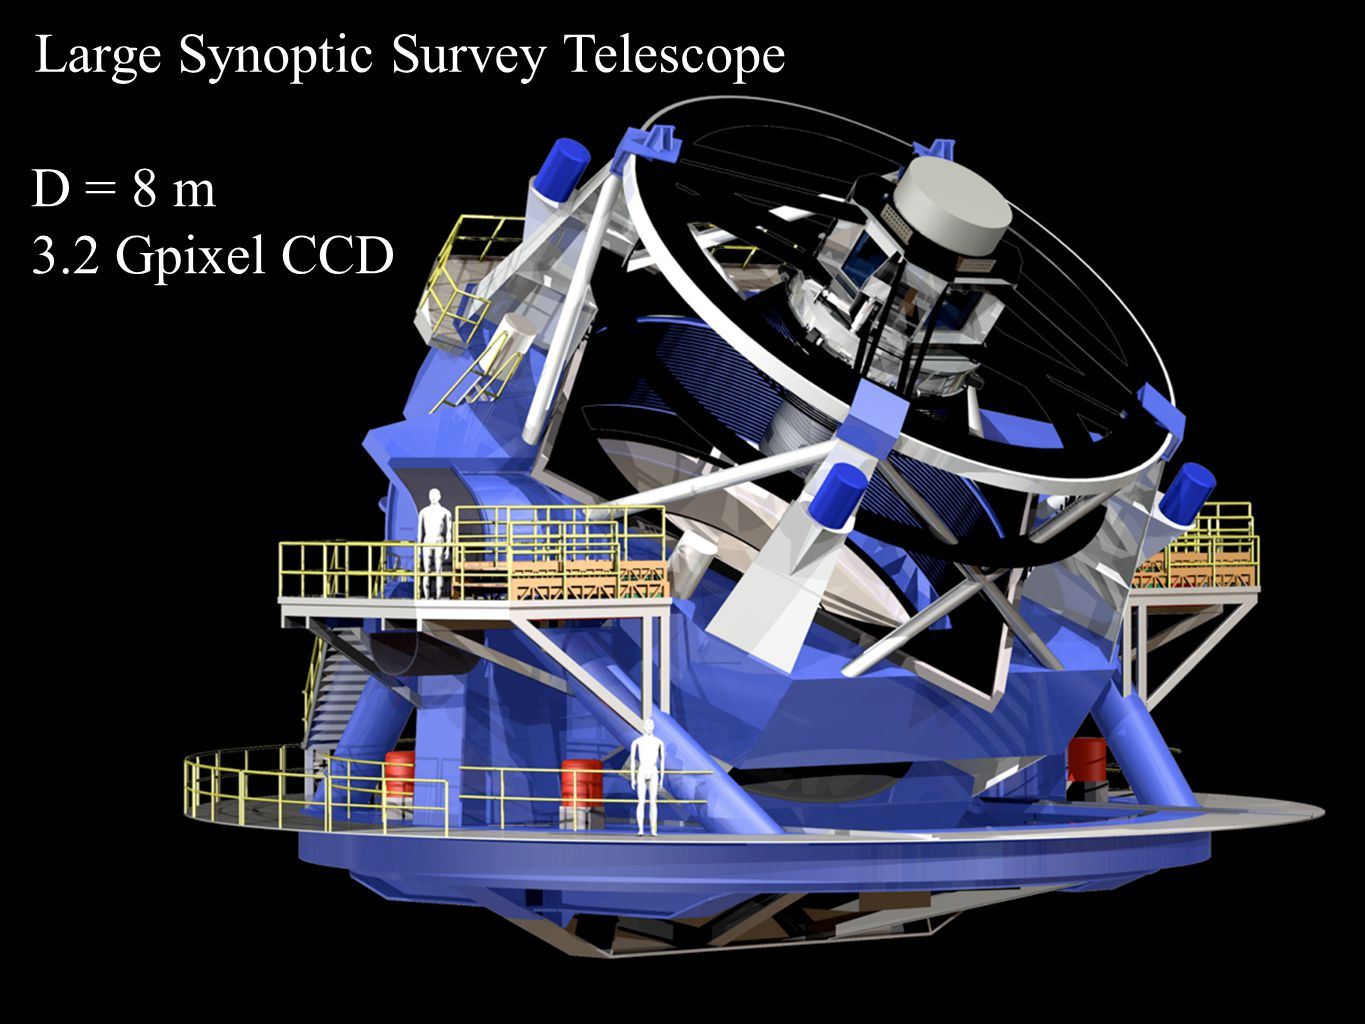 Large Synoptic Survey Telescope D = 8 m 3.2 Gpixel CCD